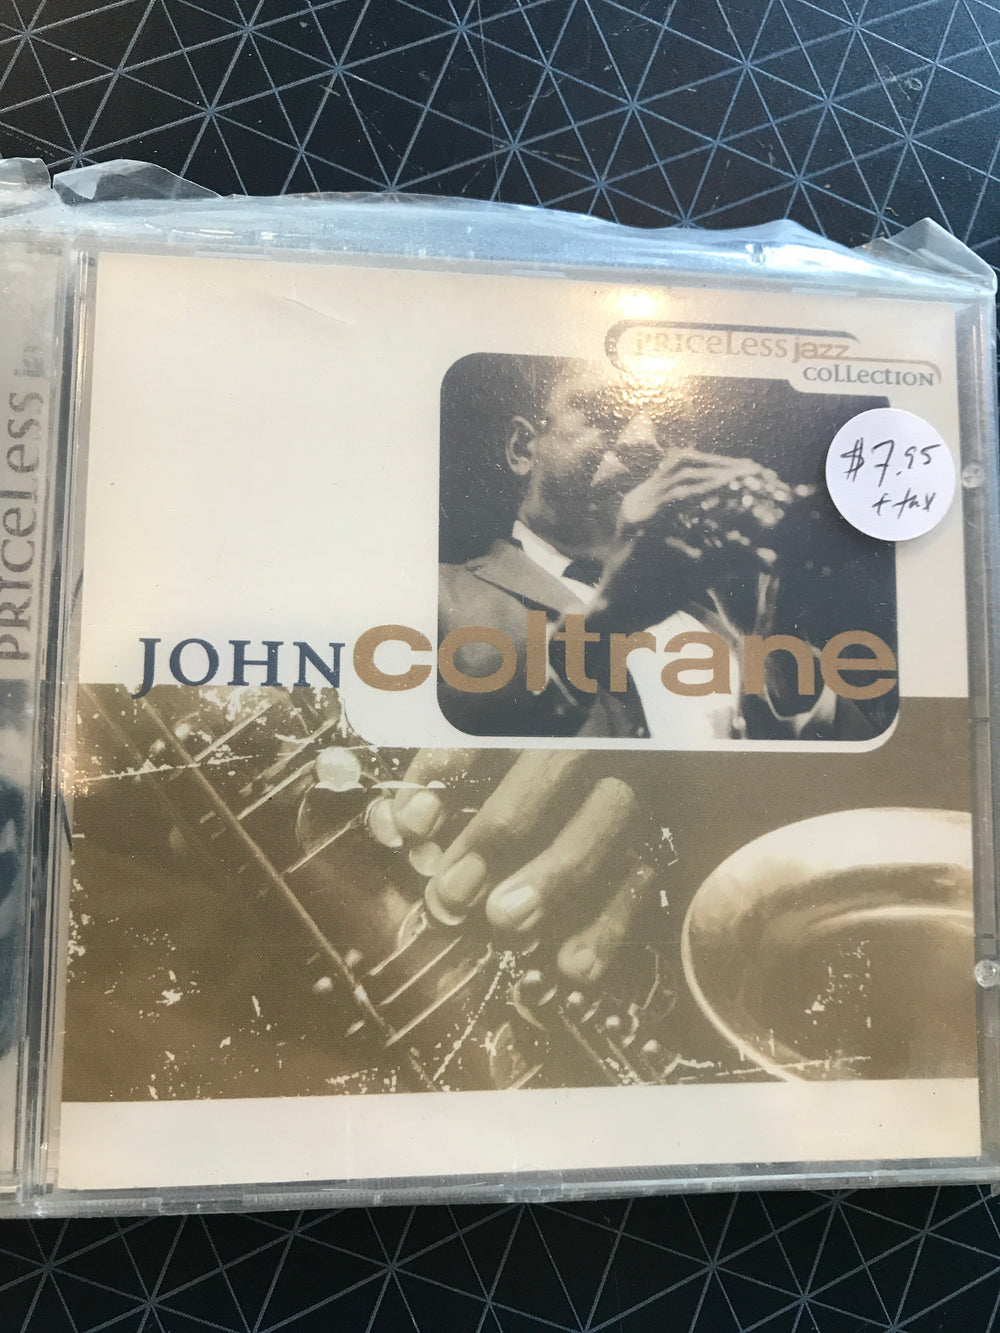 John Coltrane - Priceless Jazz Collection  - Used CD